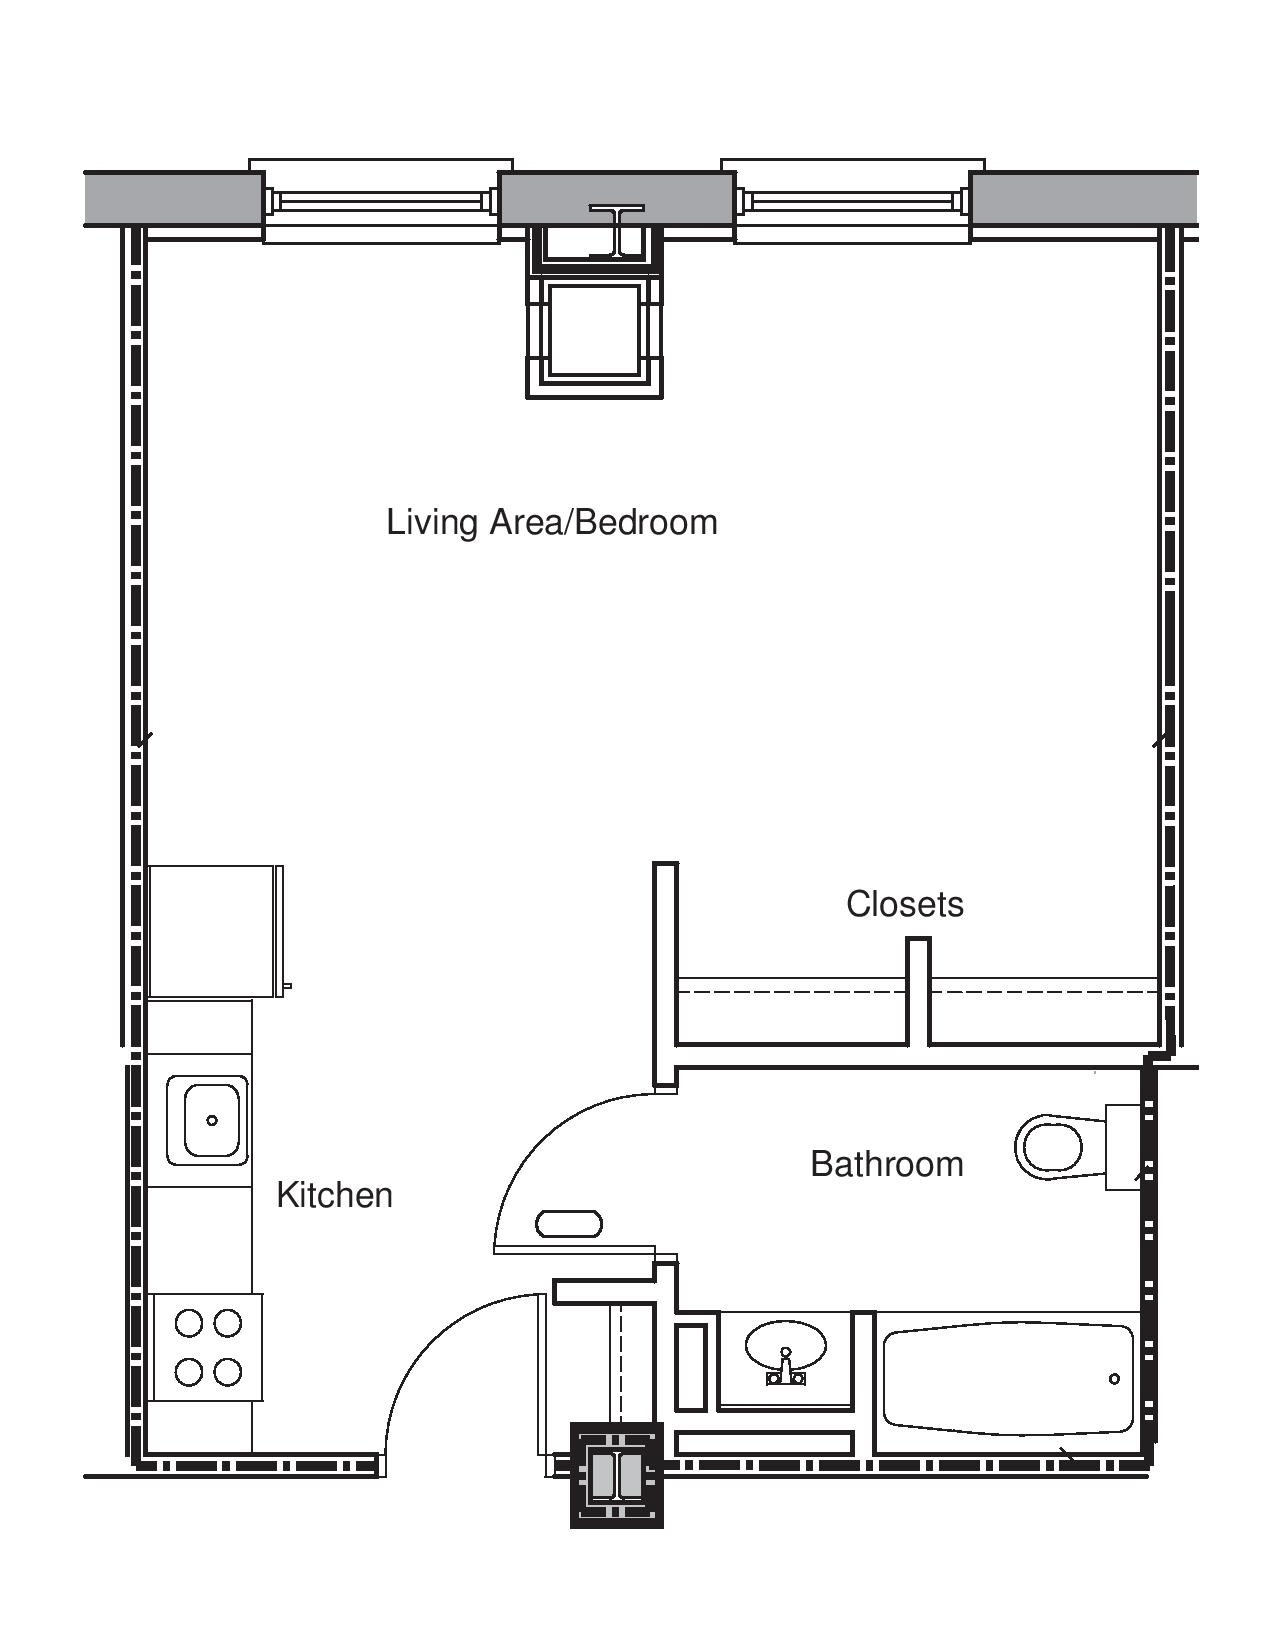 Emejing Efficiency Apartment Floor Plans Gallery - Decorating inside Best Layout For Lakeview Gardens Apartments Design Ideas